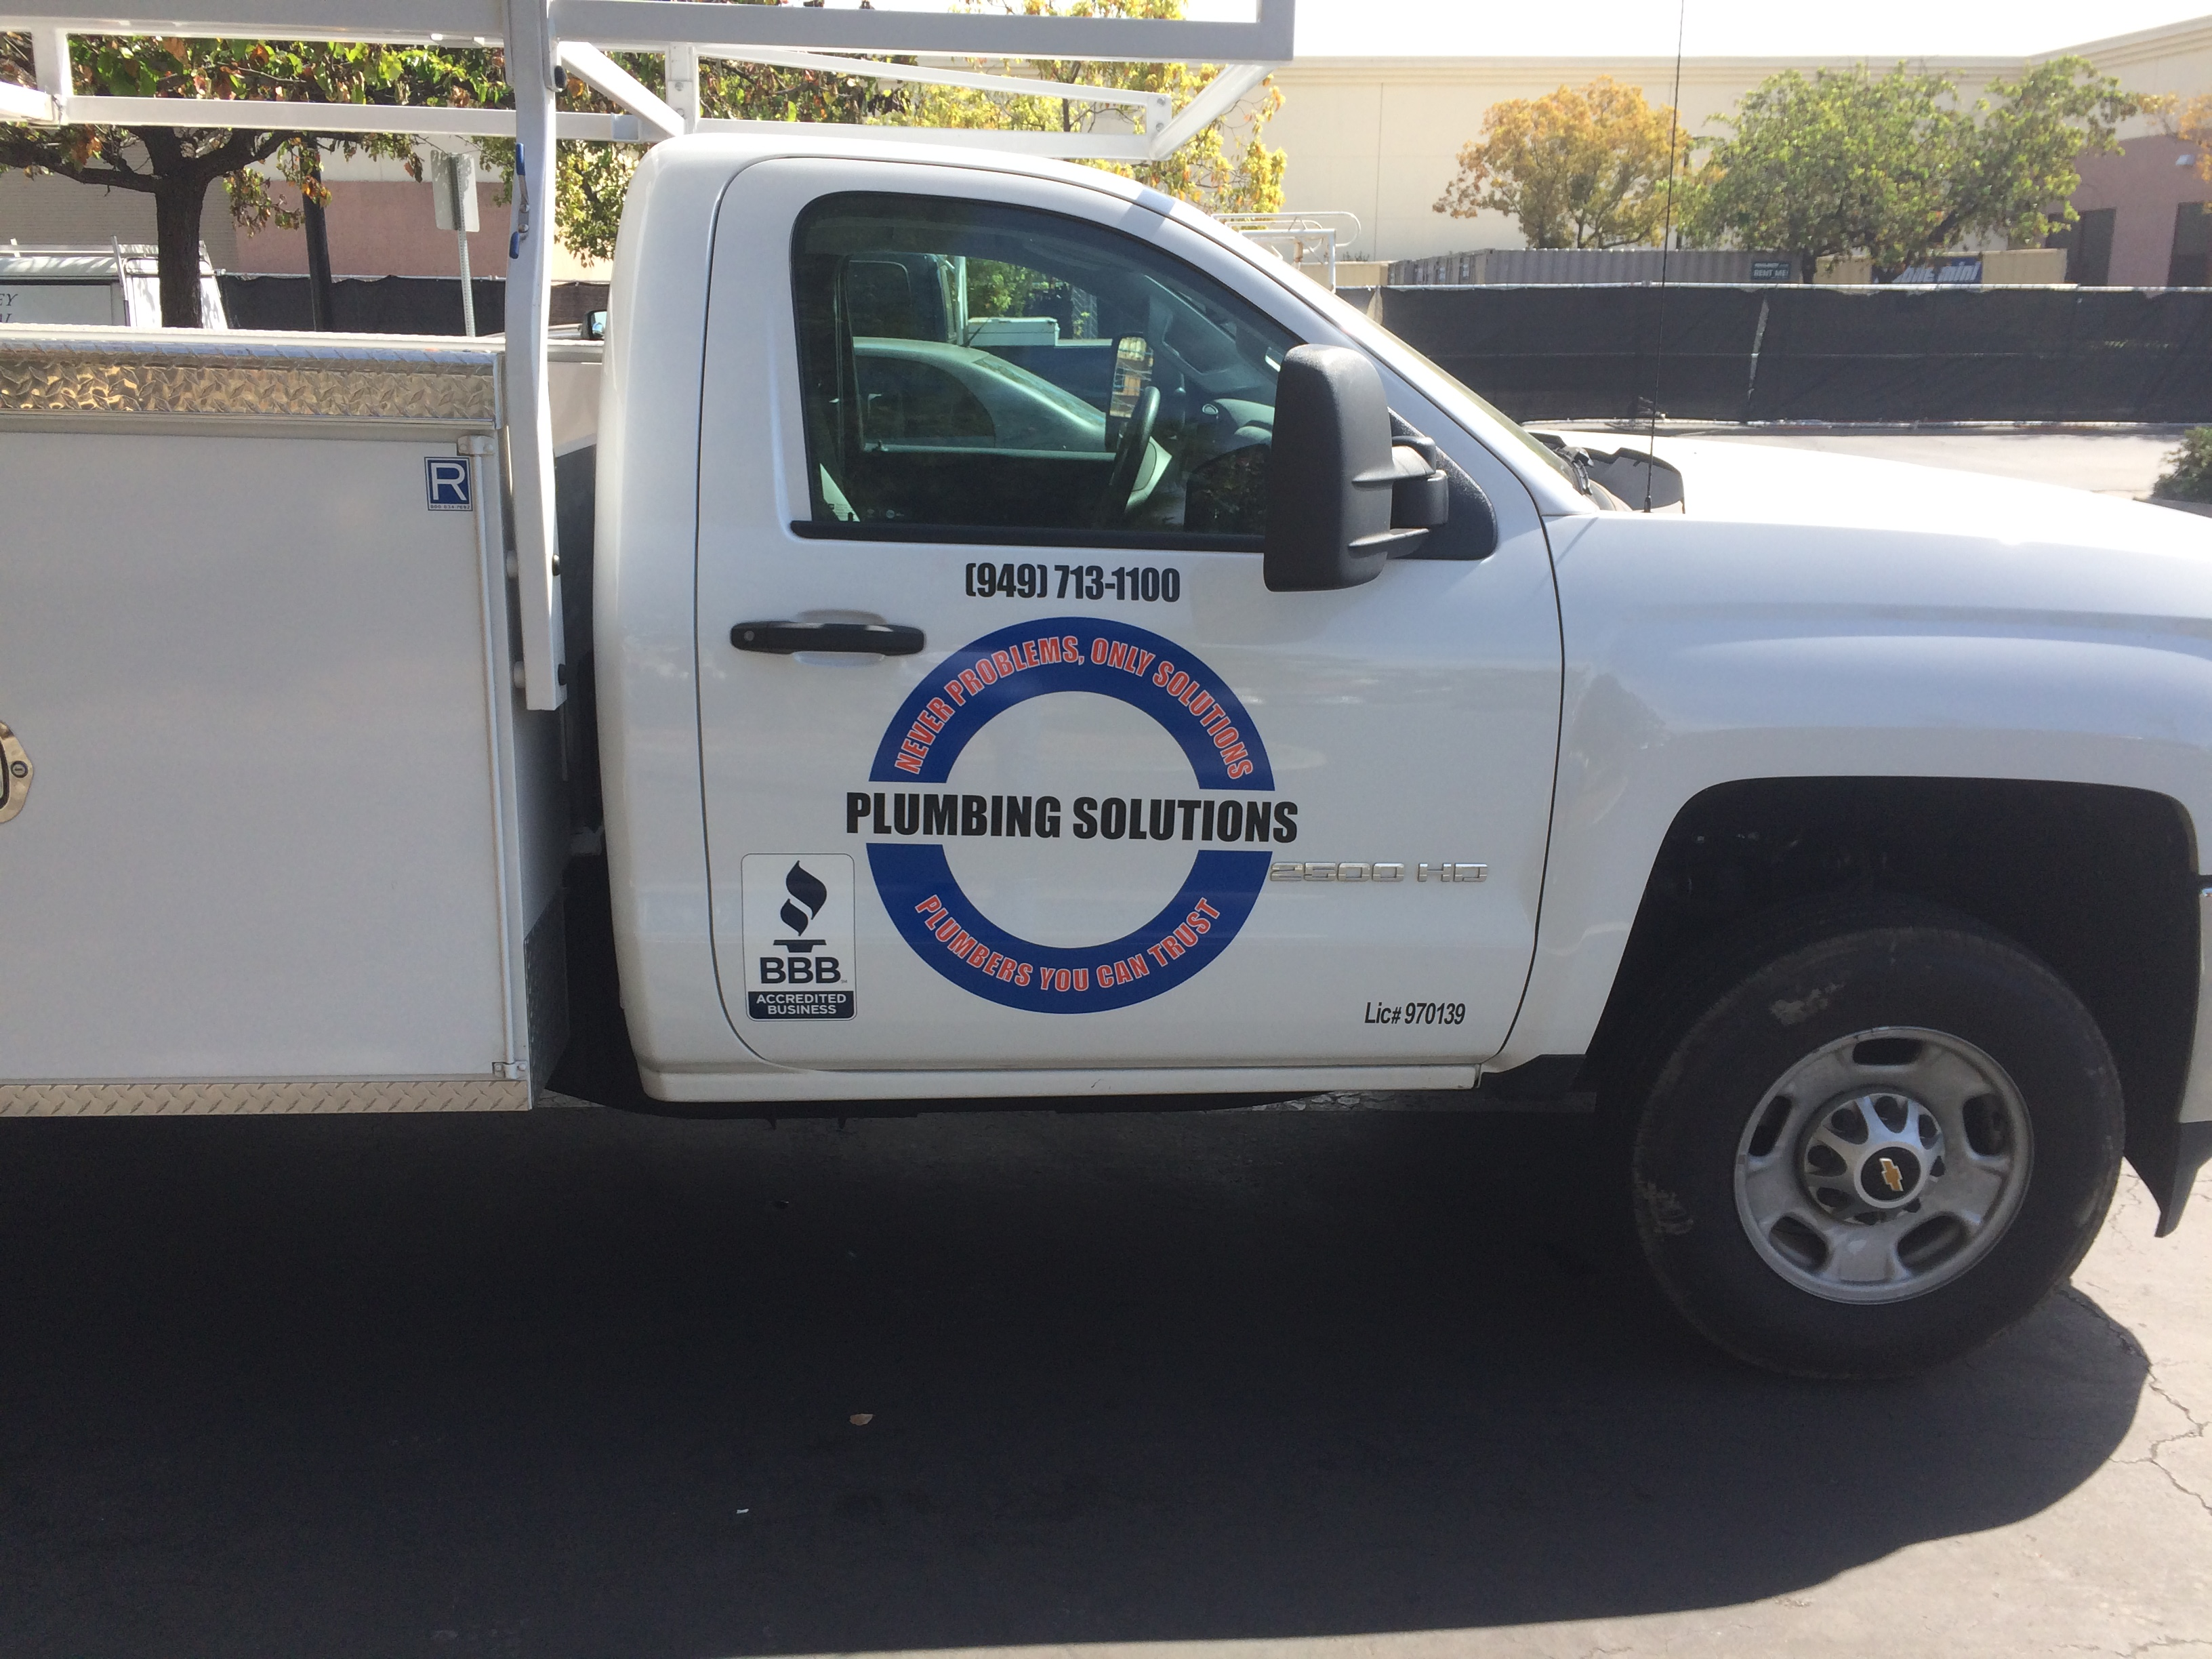 Plumbing Solutions Fleet Wrap